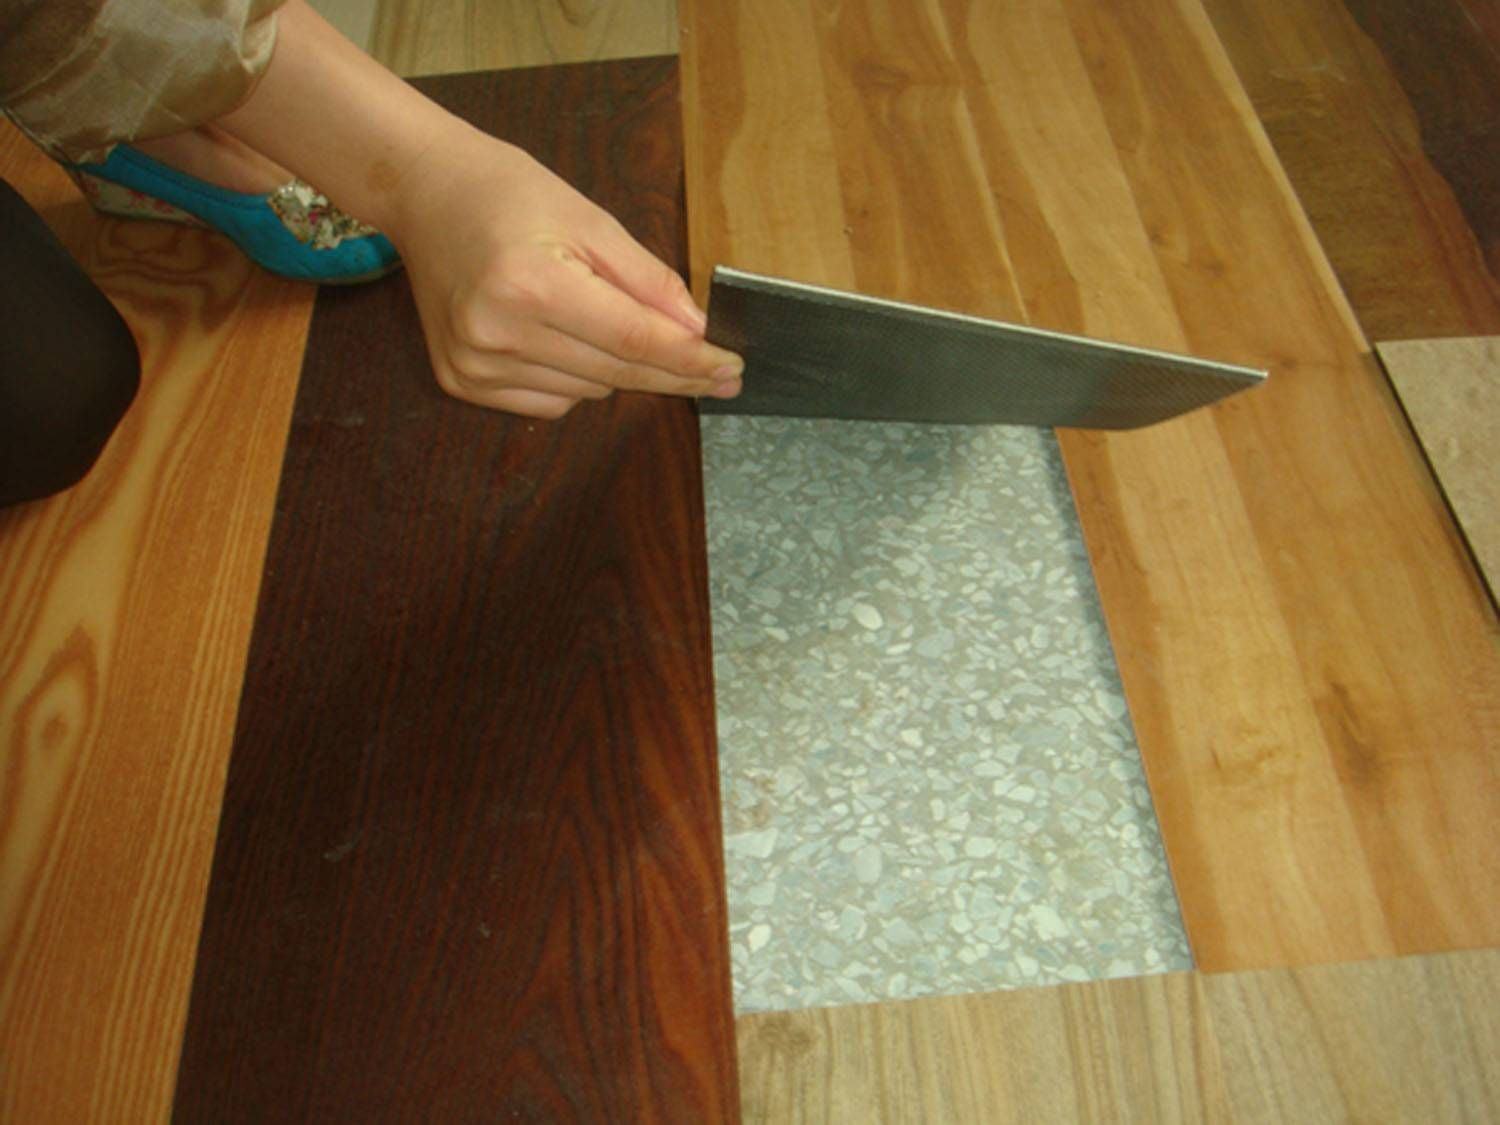 Has Your Vinyl Floor Been Damaged Repairing Is Easy If You Follow These Steps Floating Vinyl Flooring Vinyl Flooring Vinyl Sheet Flooring